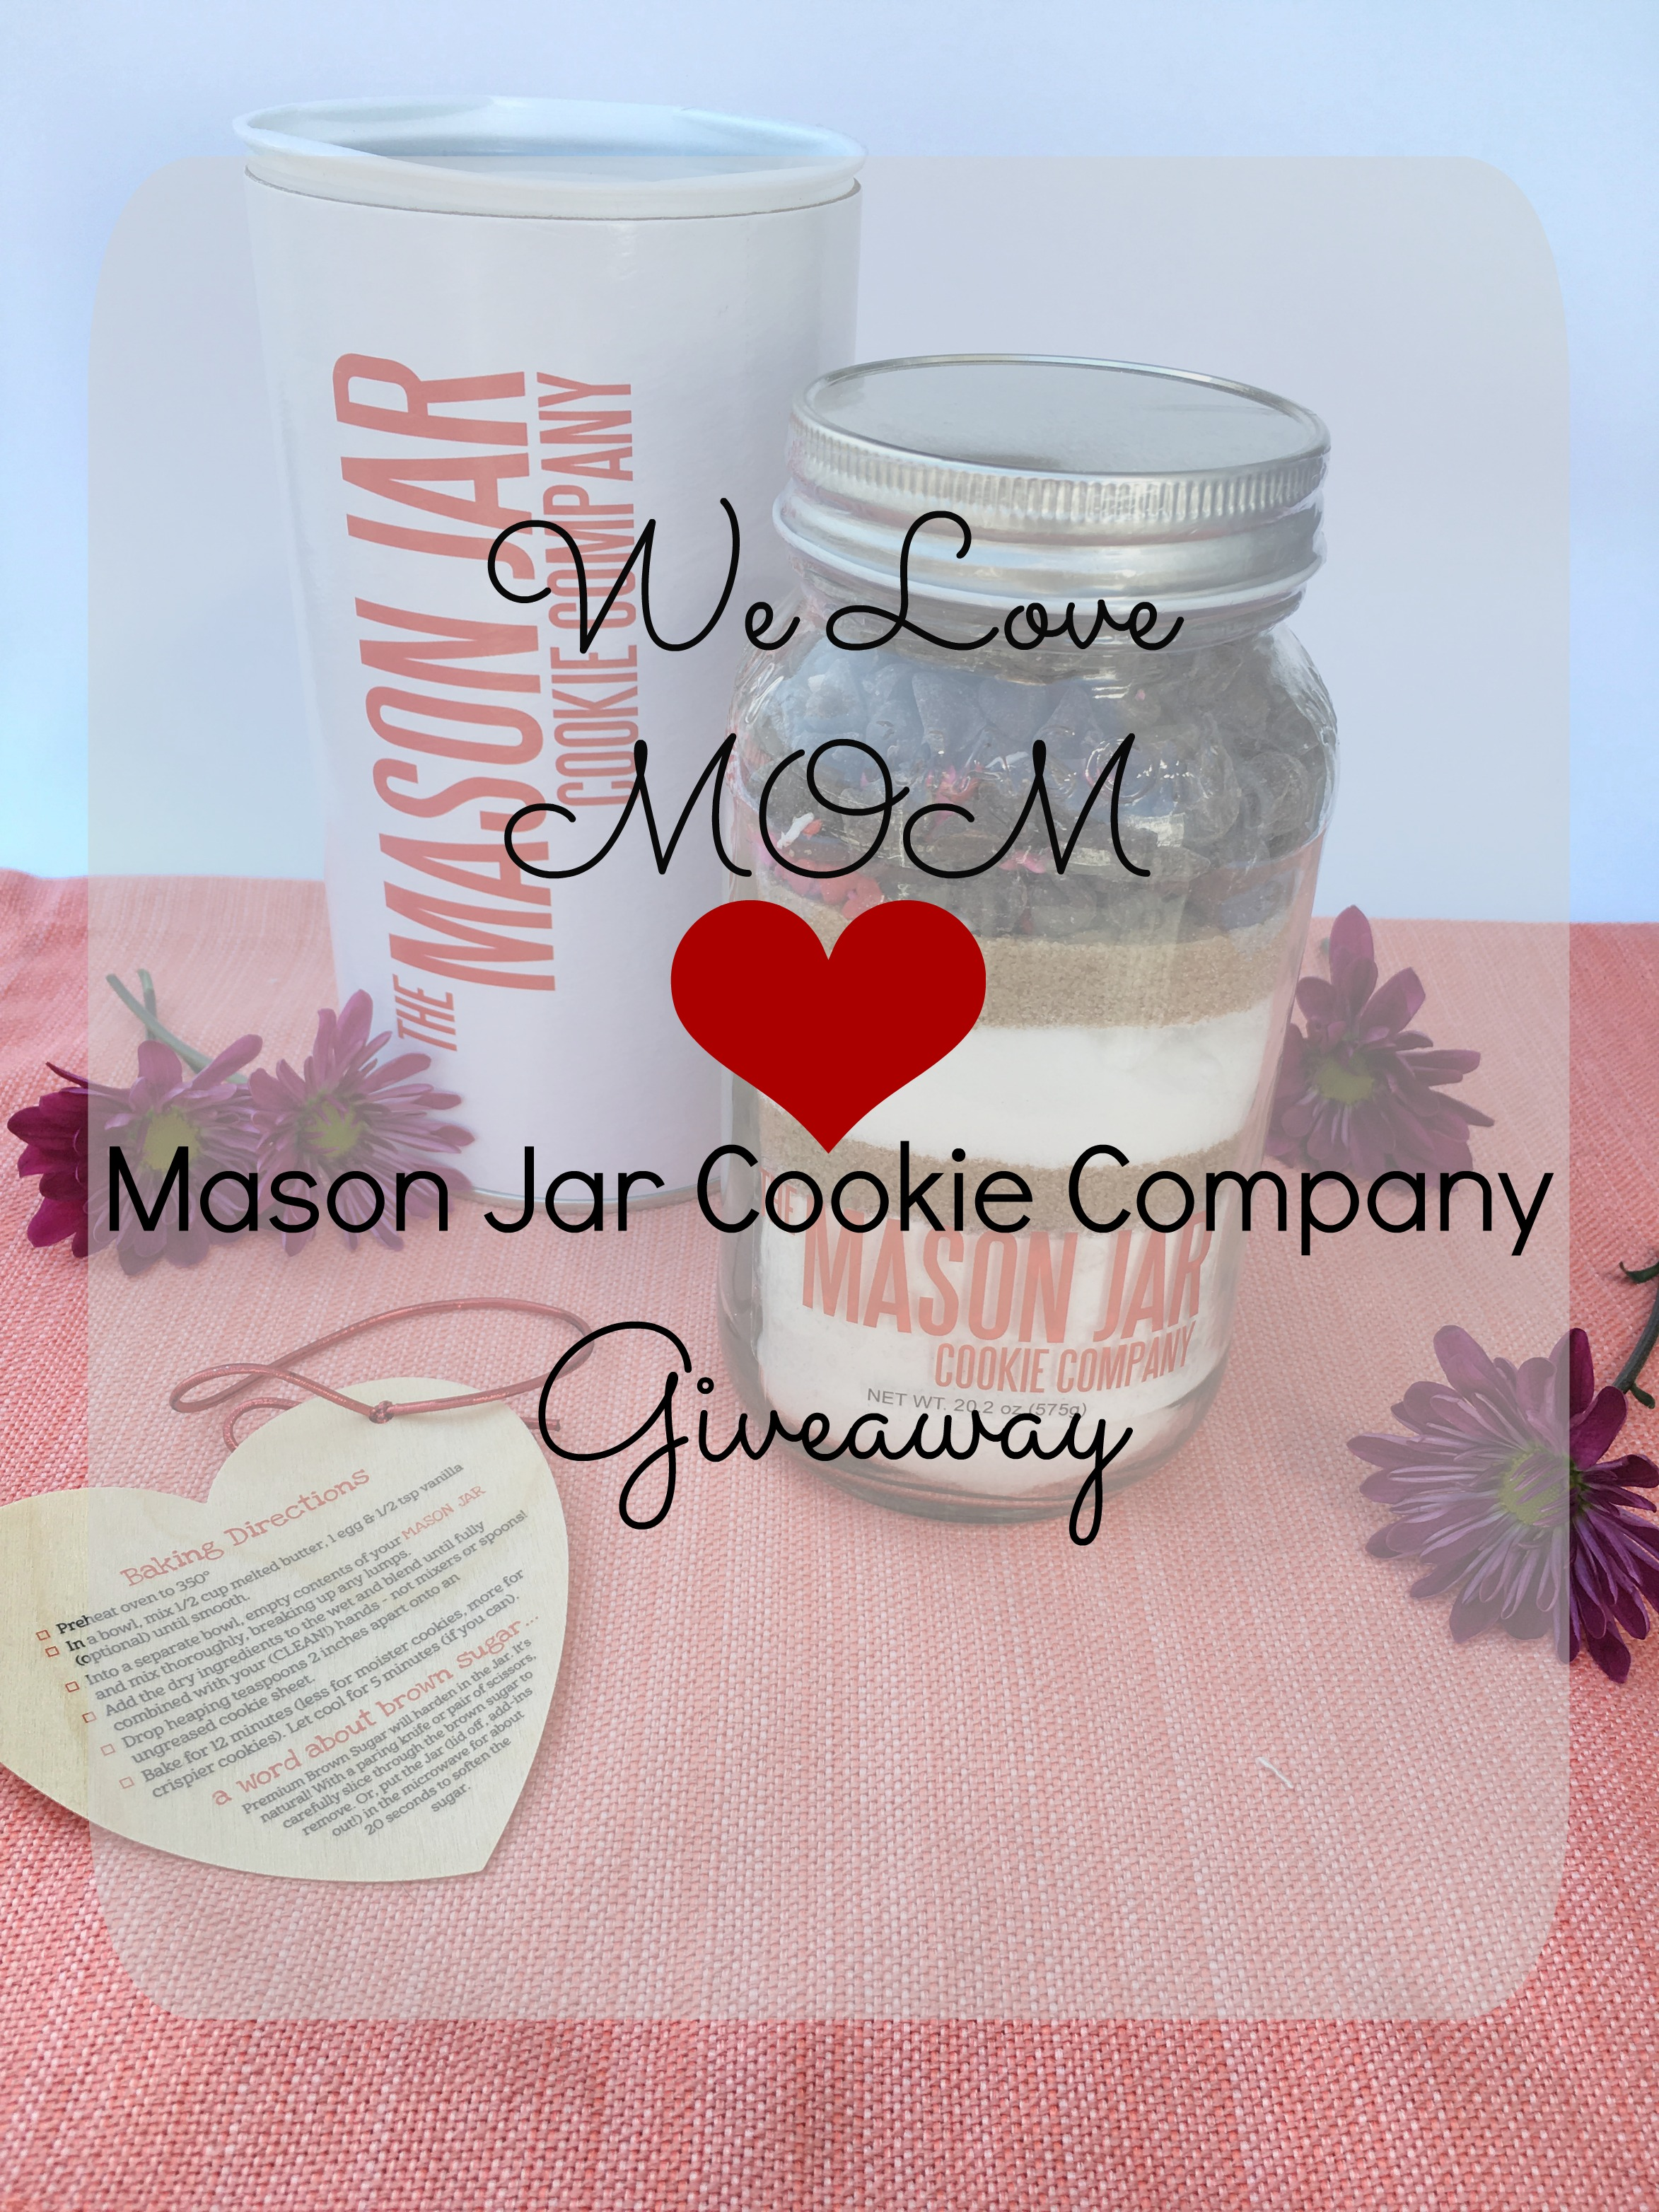 Mason Jar Cookie Company Giveaway